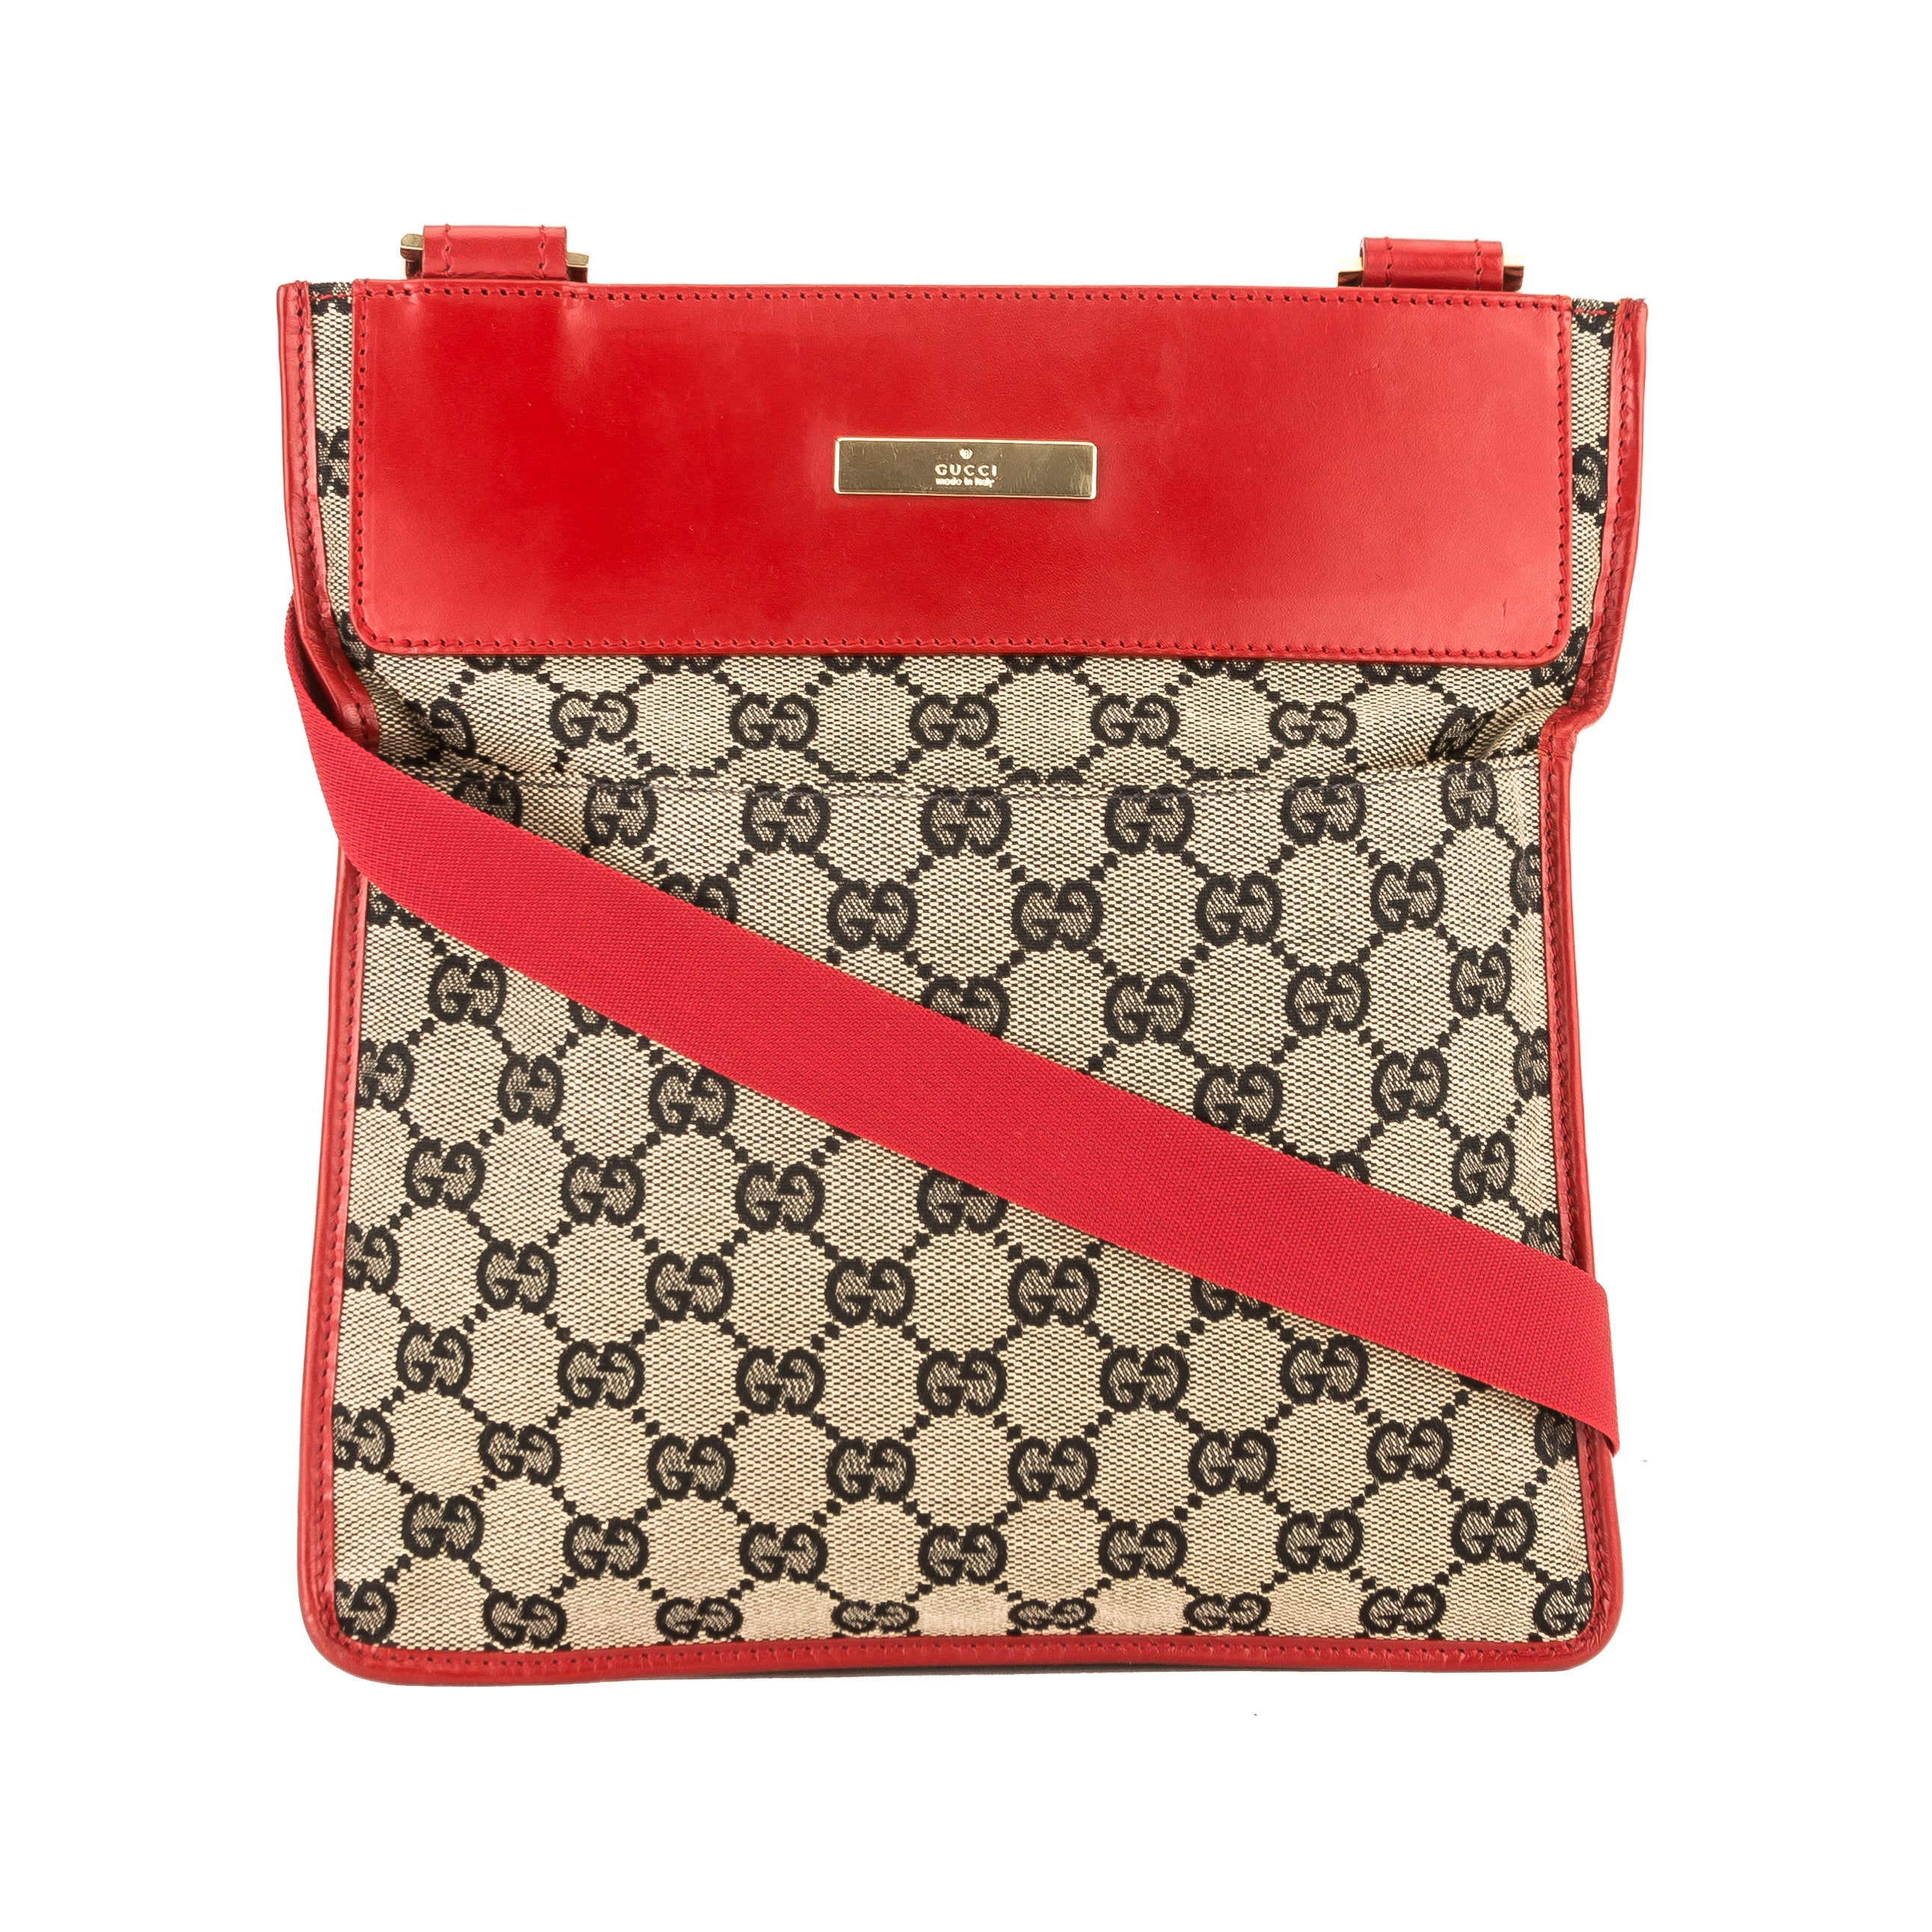 890b1f9696d Gucci Red Leather GG Monogram Canvas Sling Bag (Pre Owned) - 3811005 ...